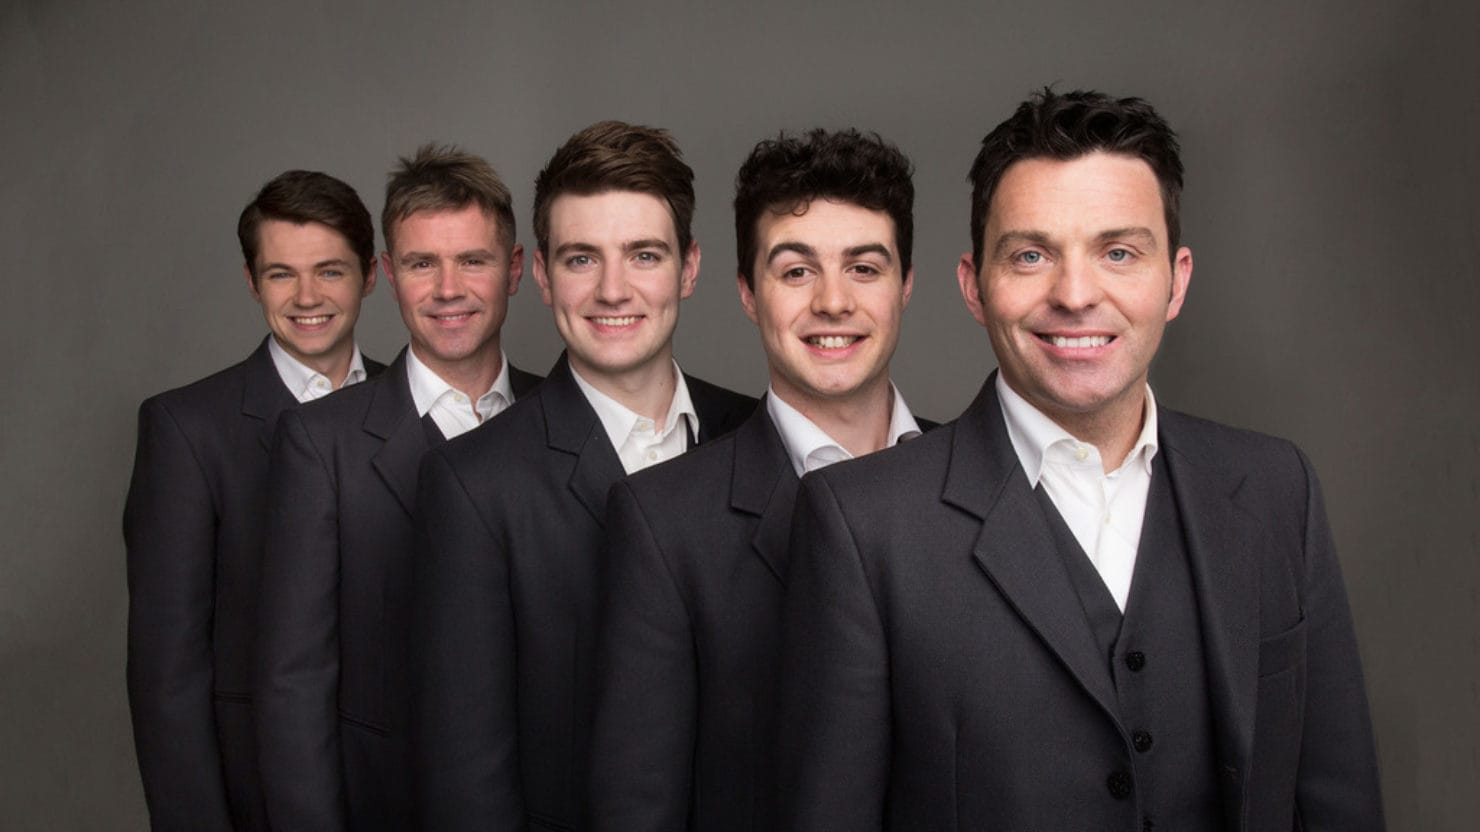 Celtic Thunder Tour 2020.Celtic Thunder Tour Dates And Concert Tickets